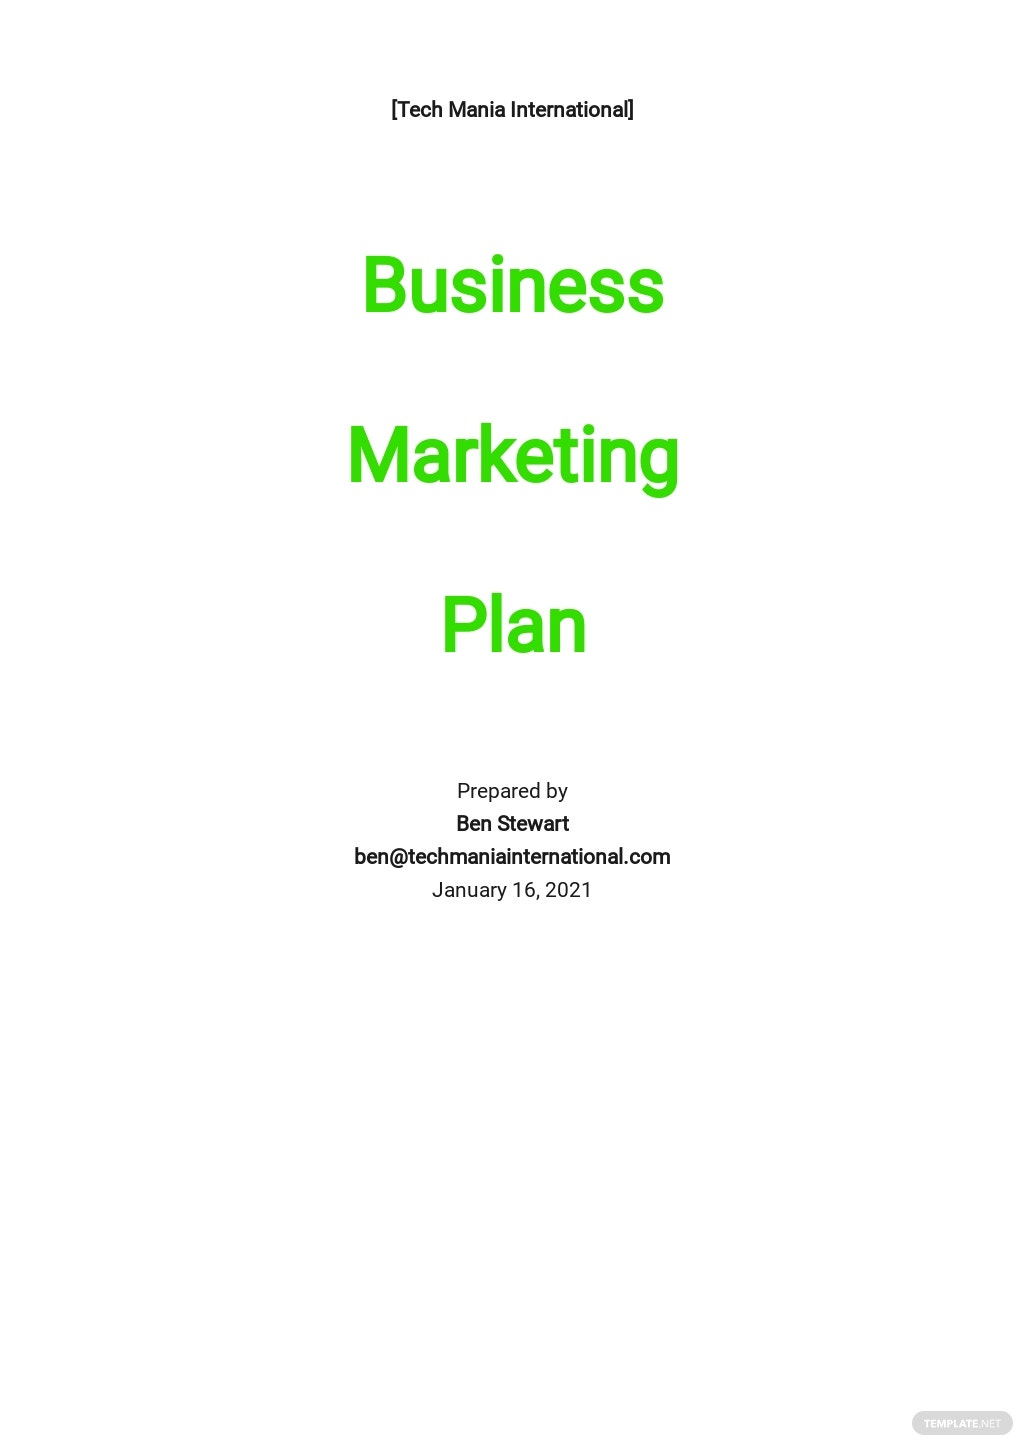 IT Business Marketing Plan Template